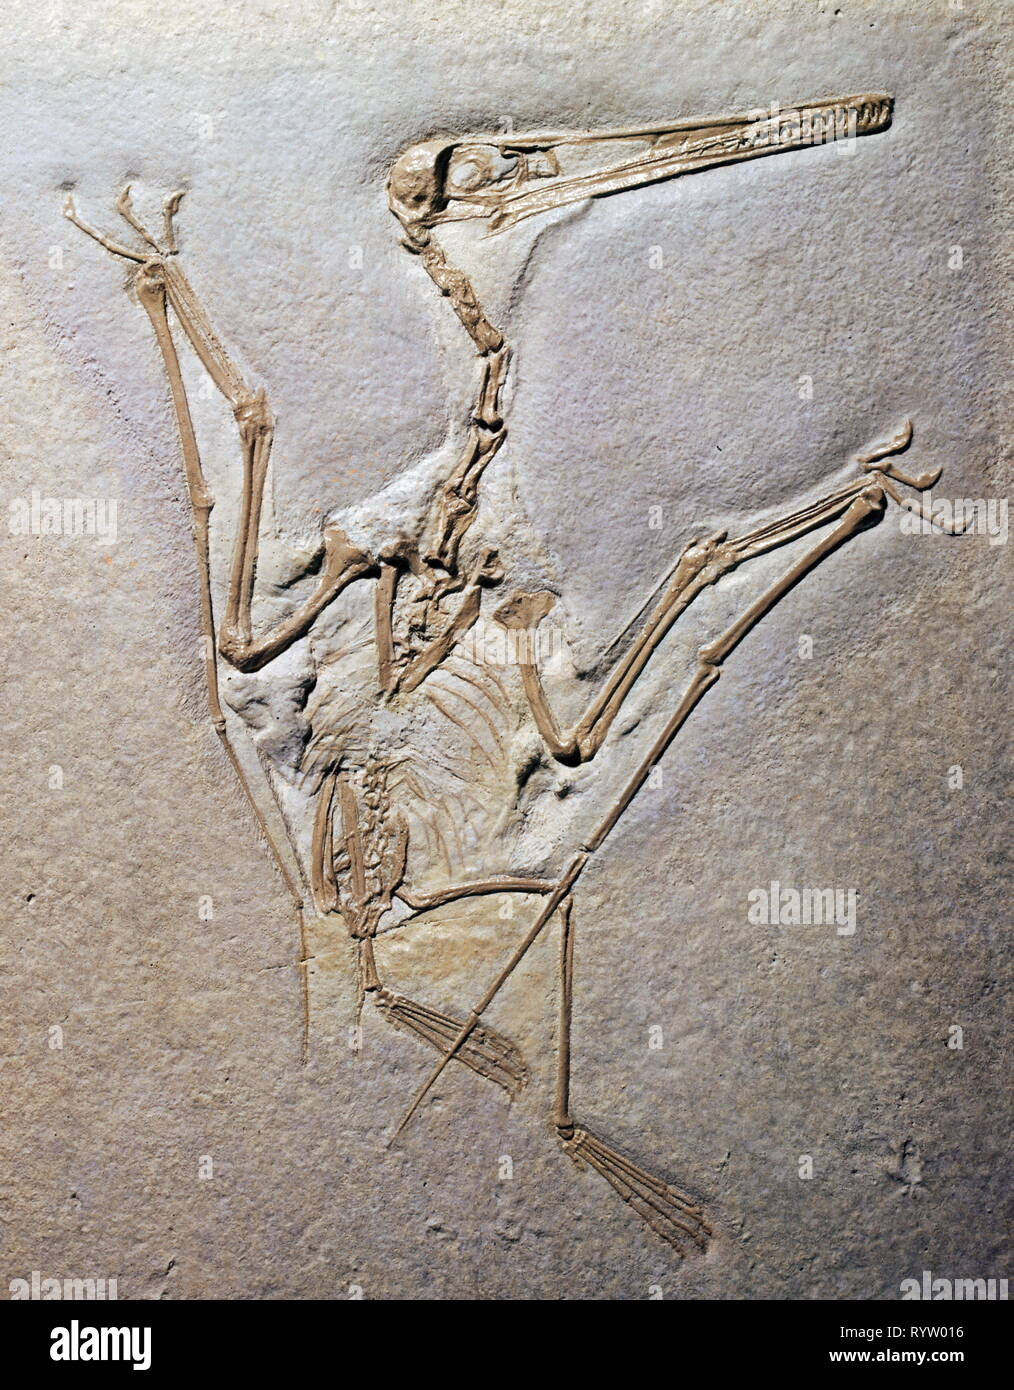 prehistory, fossilization, fossil, zoology, Pterodactylus Rochi (Pterosaur), Upper Jurassic, Eichstaett, Additional-Rights-Clearance-Info-Not-Available - Stock Image